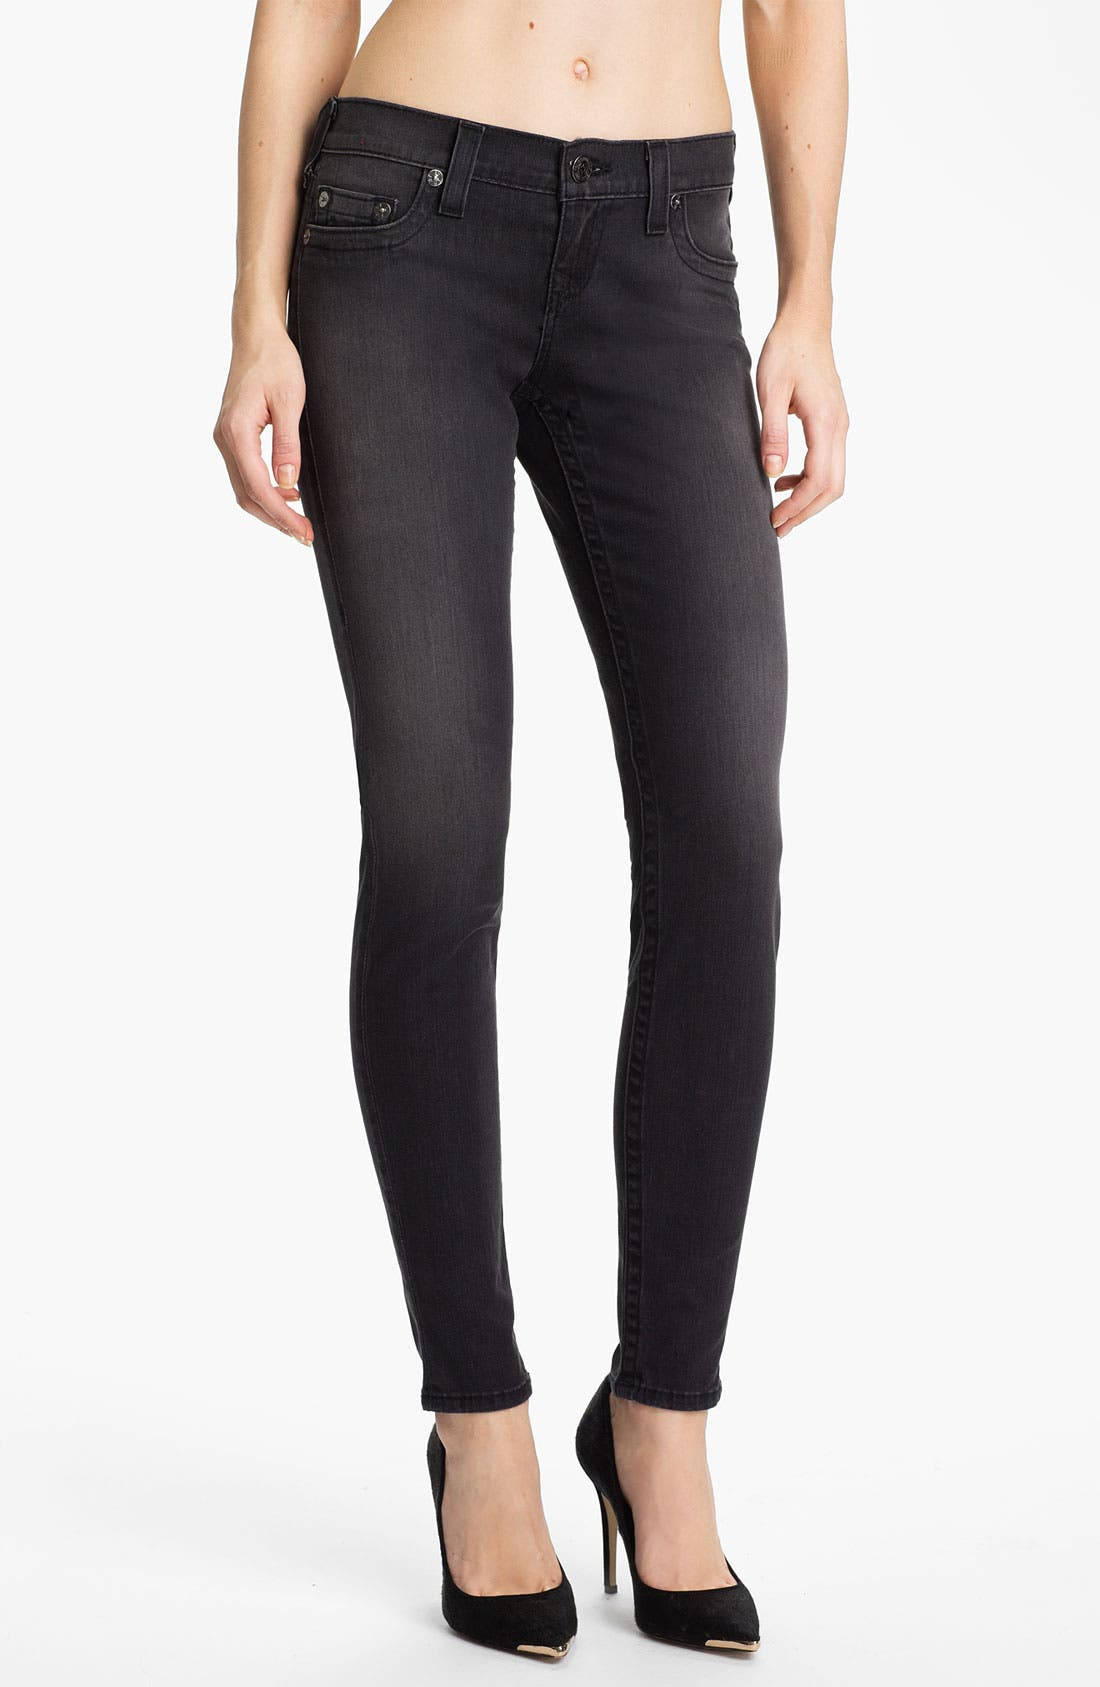 Main Image - True Religion Brand Jeans 'Casey' Skinny Stretch Jeans (Hot Lead)